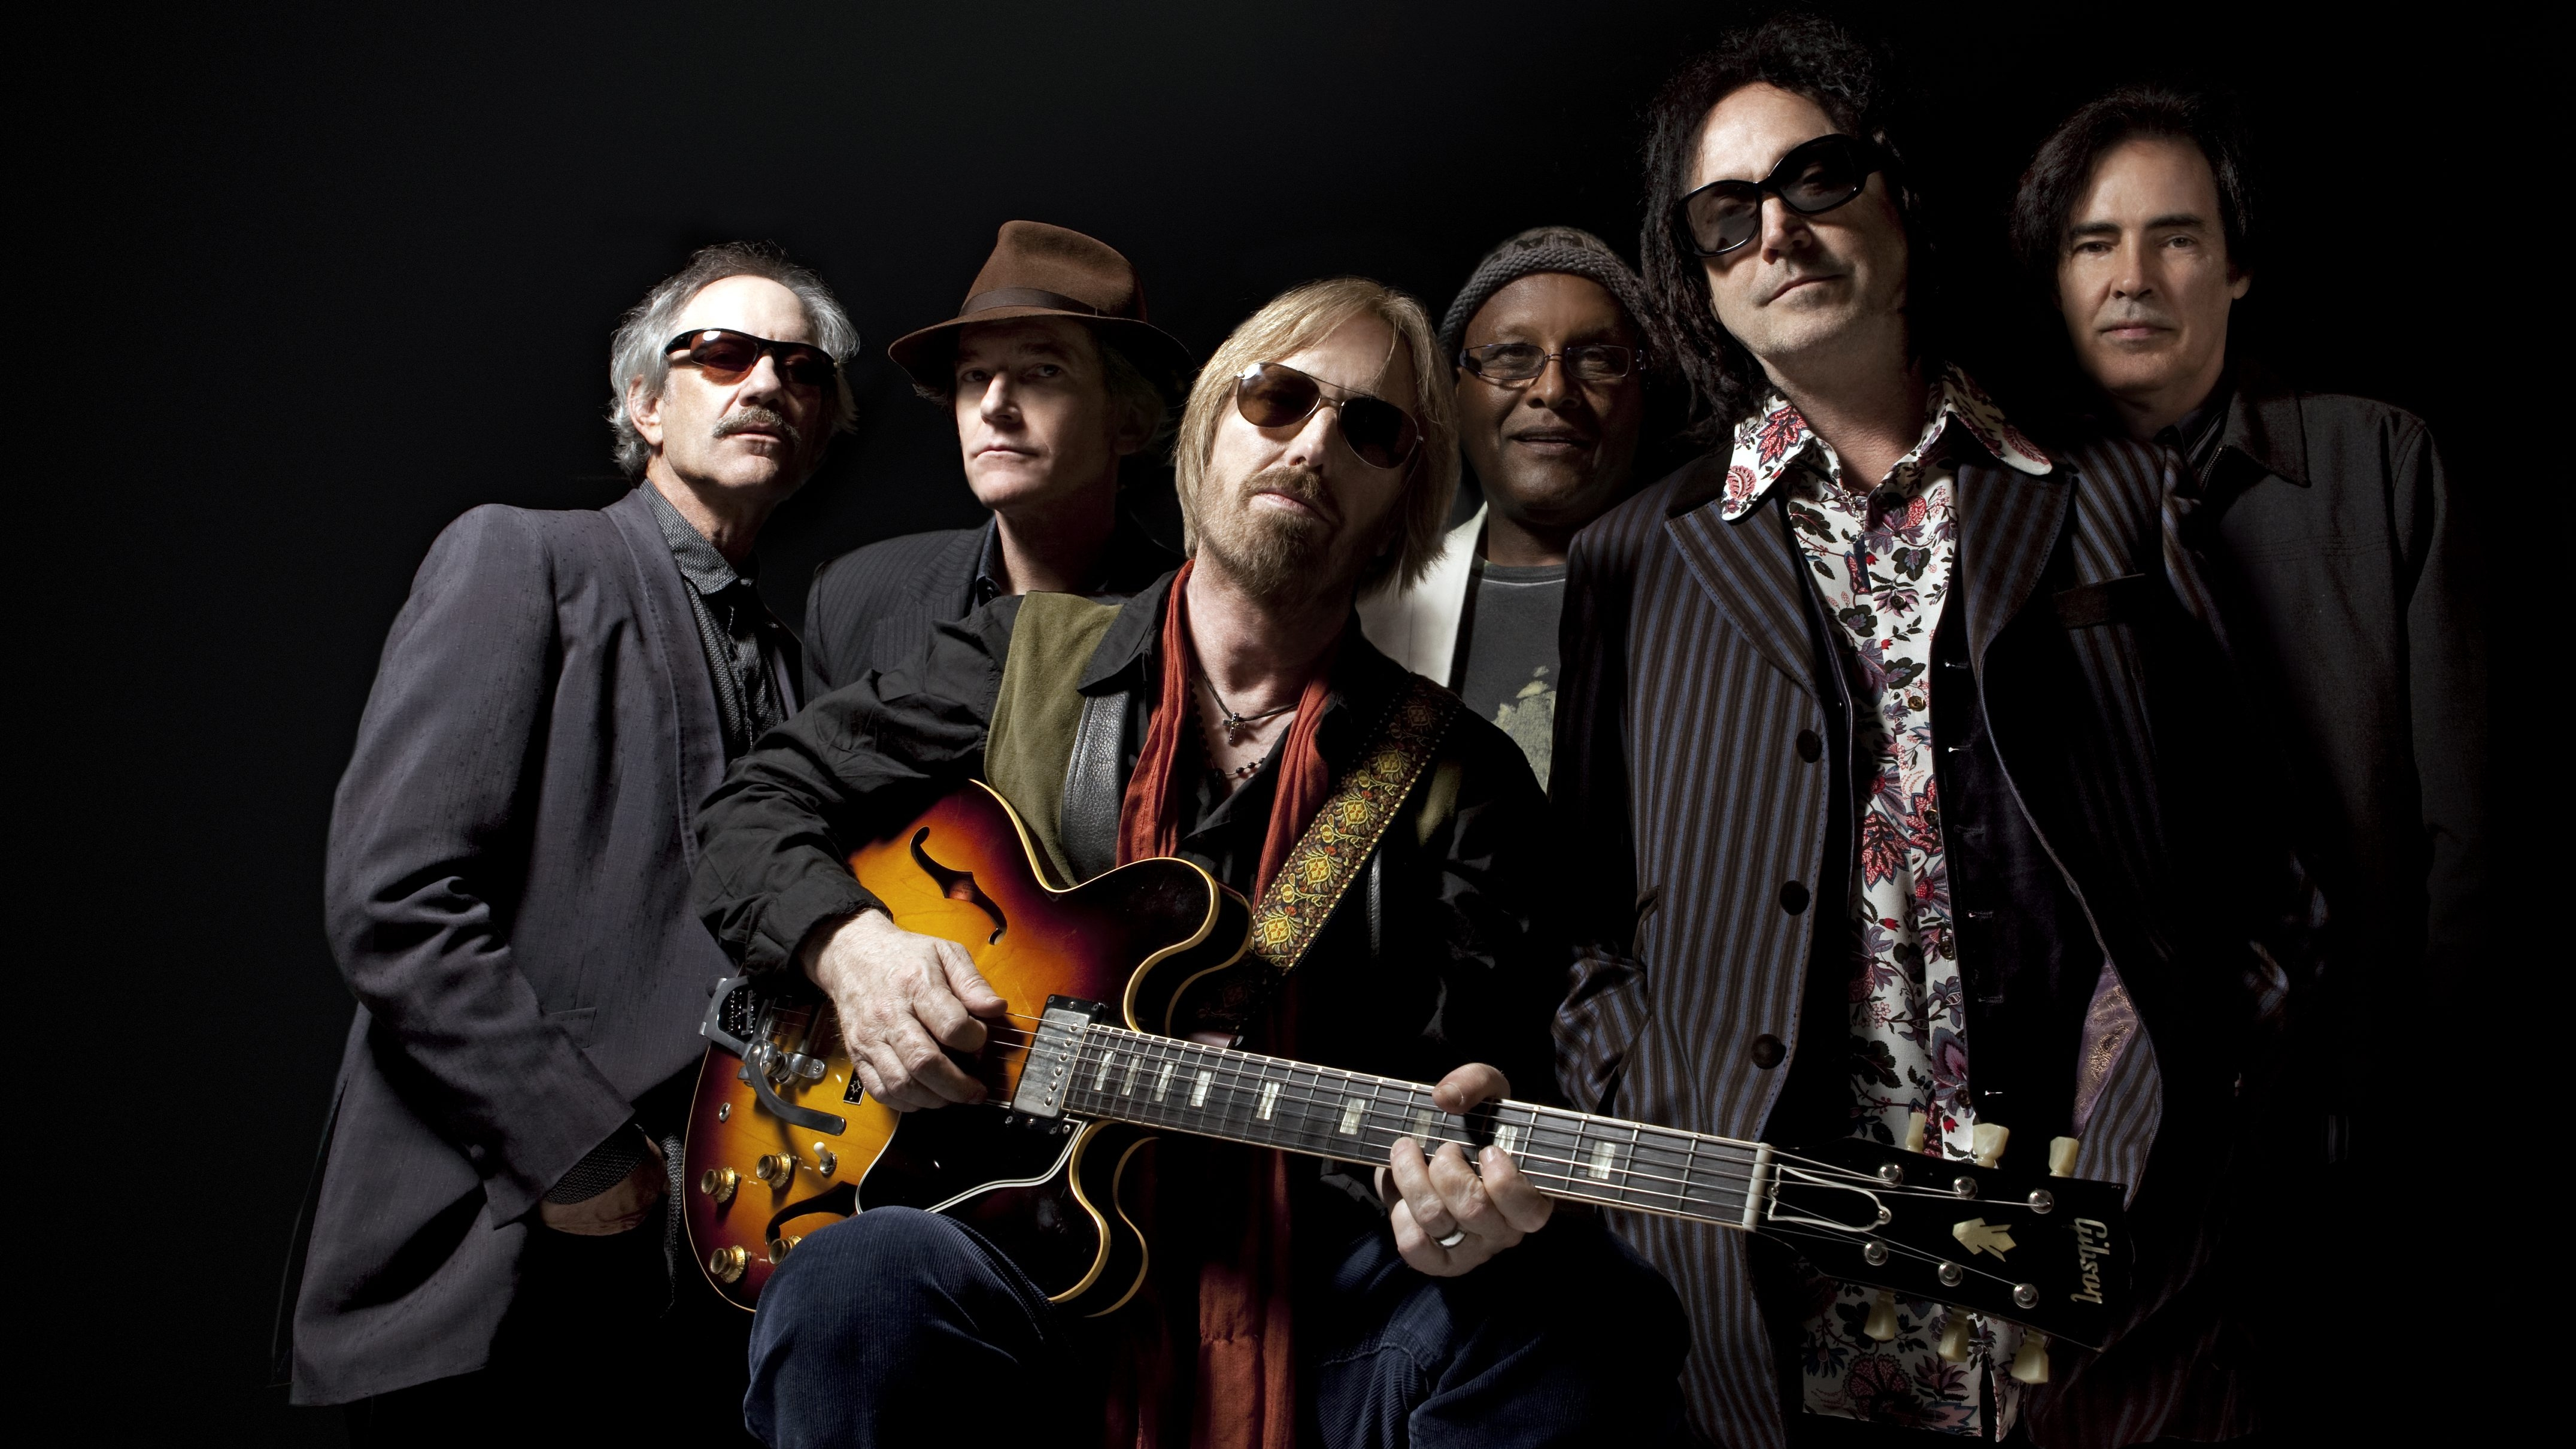 Tom Petty & the Heartbreakers released the darkly brilliant 'Hypnotic Eye' this week.